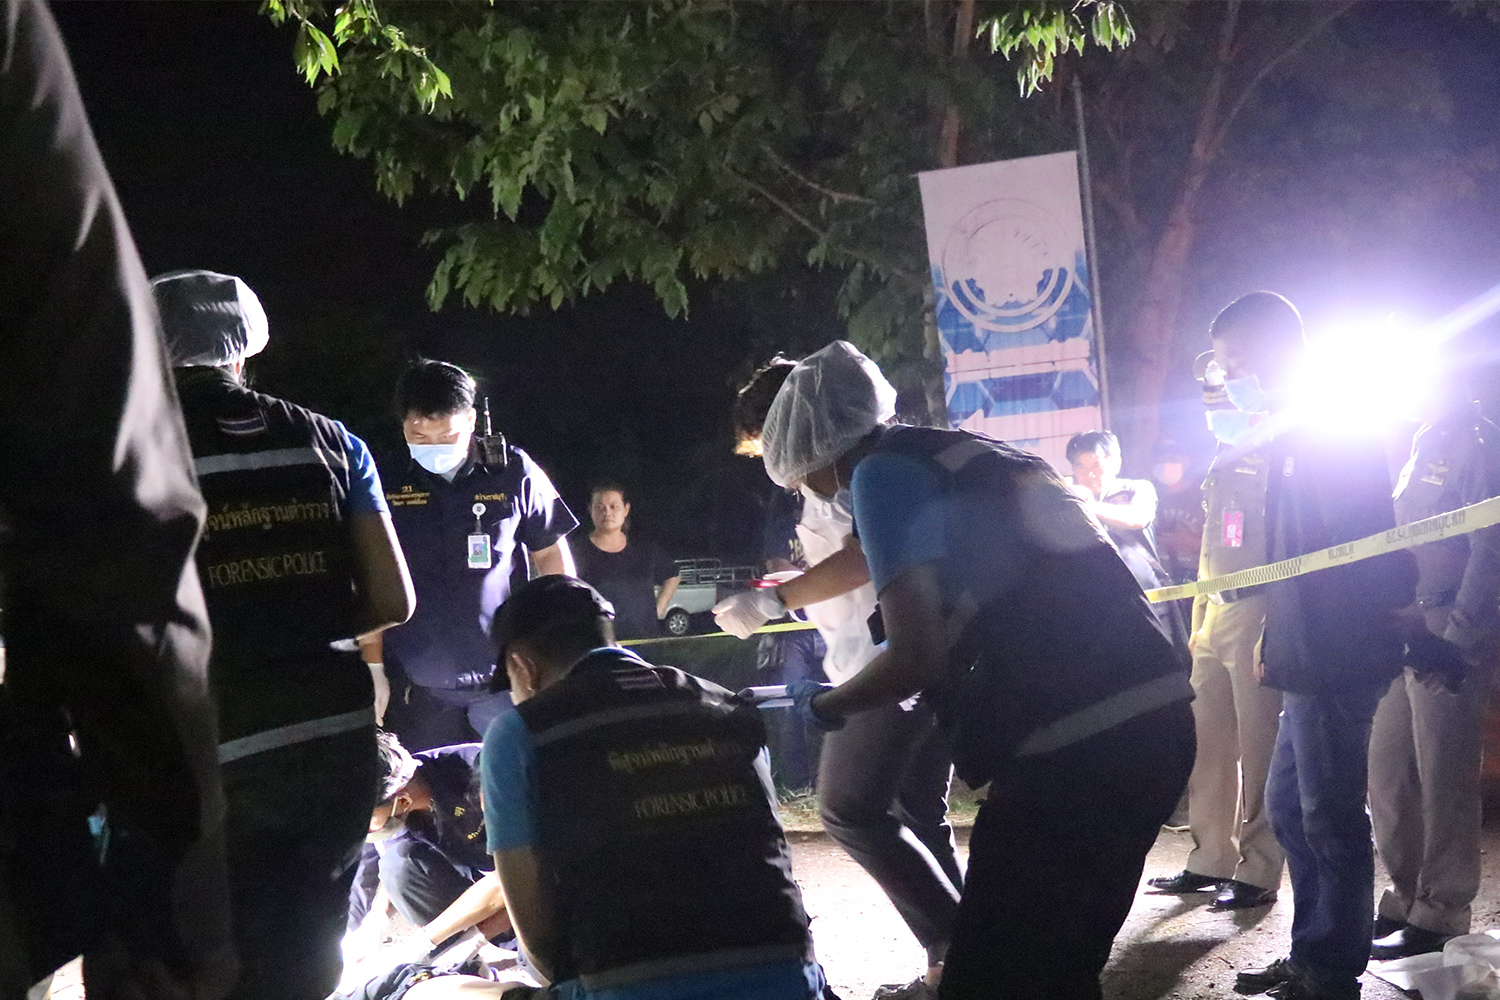 Police inspect the body of one of two people shot to death in Photharam district of Ratchaburi on Saturday night. (Photo by Saichol Srinuanchan)